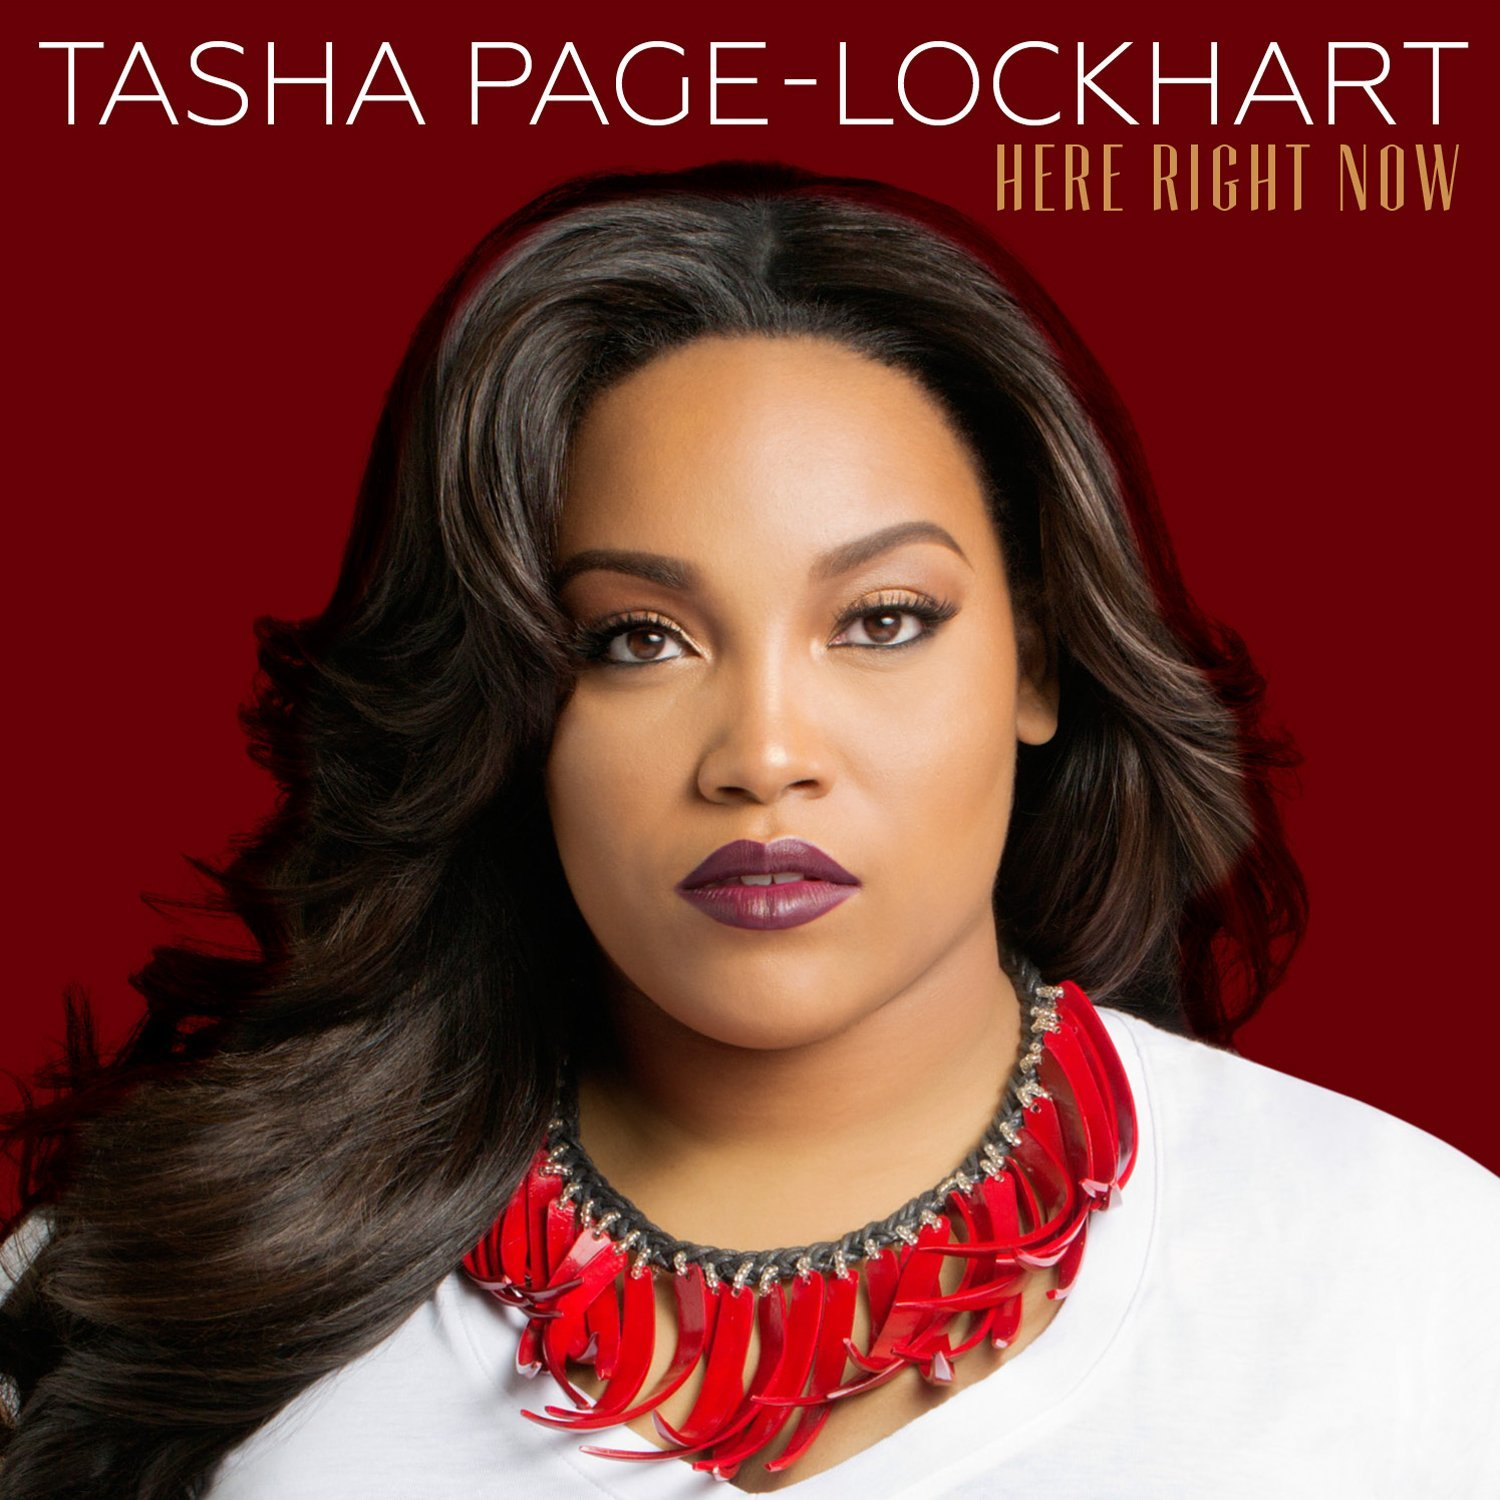 tasha page lockhart-here right now-thatgrapejuice